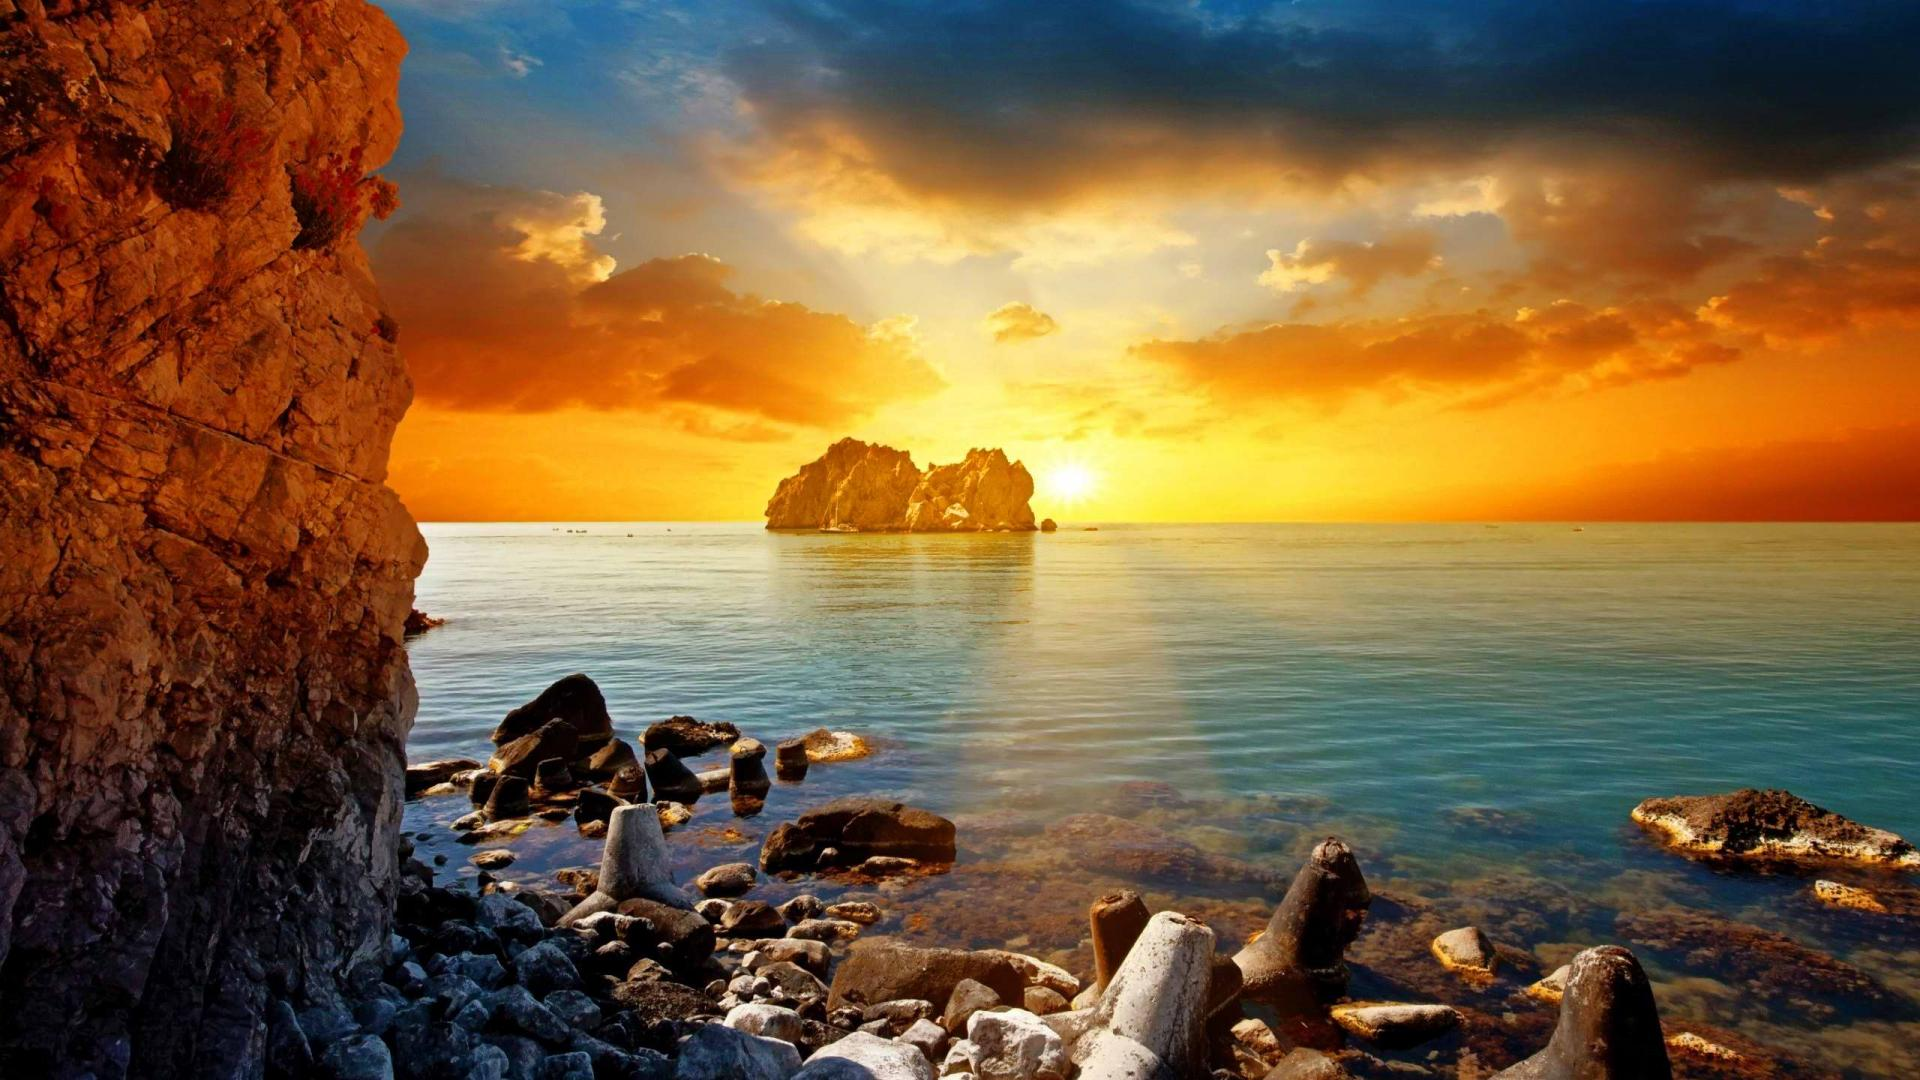 Sunset Pictures HD Wallpaper wallpapers55com   Best Wallpapers 1920x1080